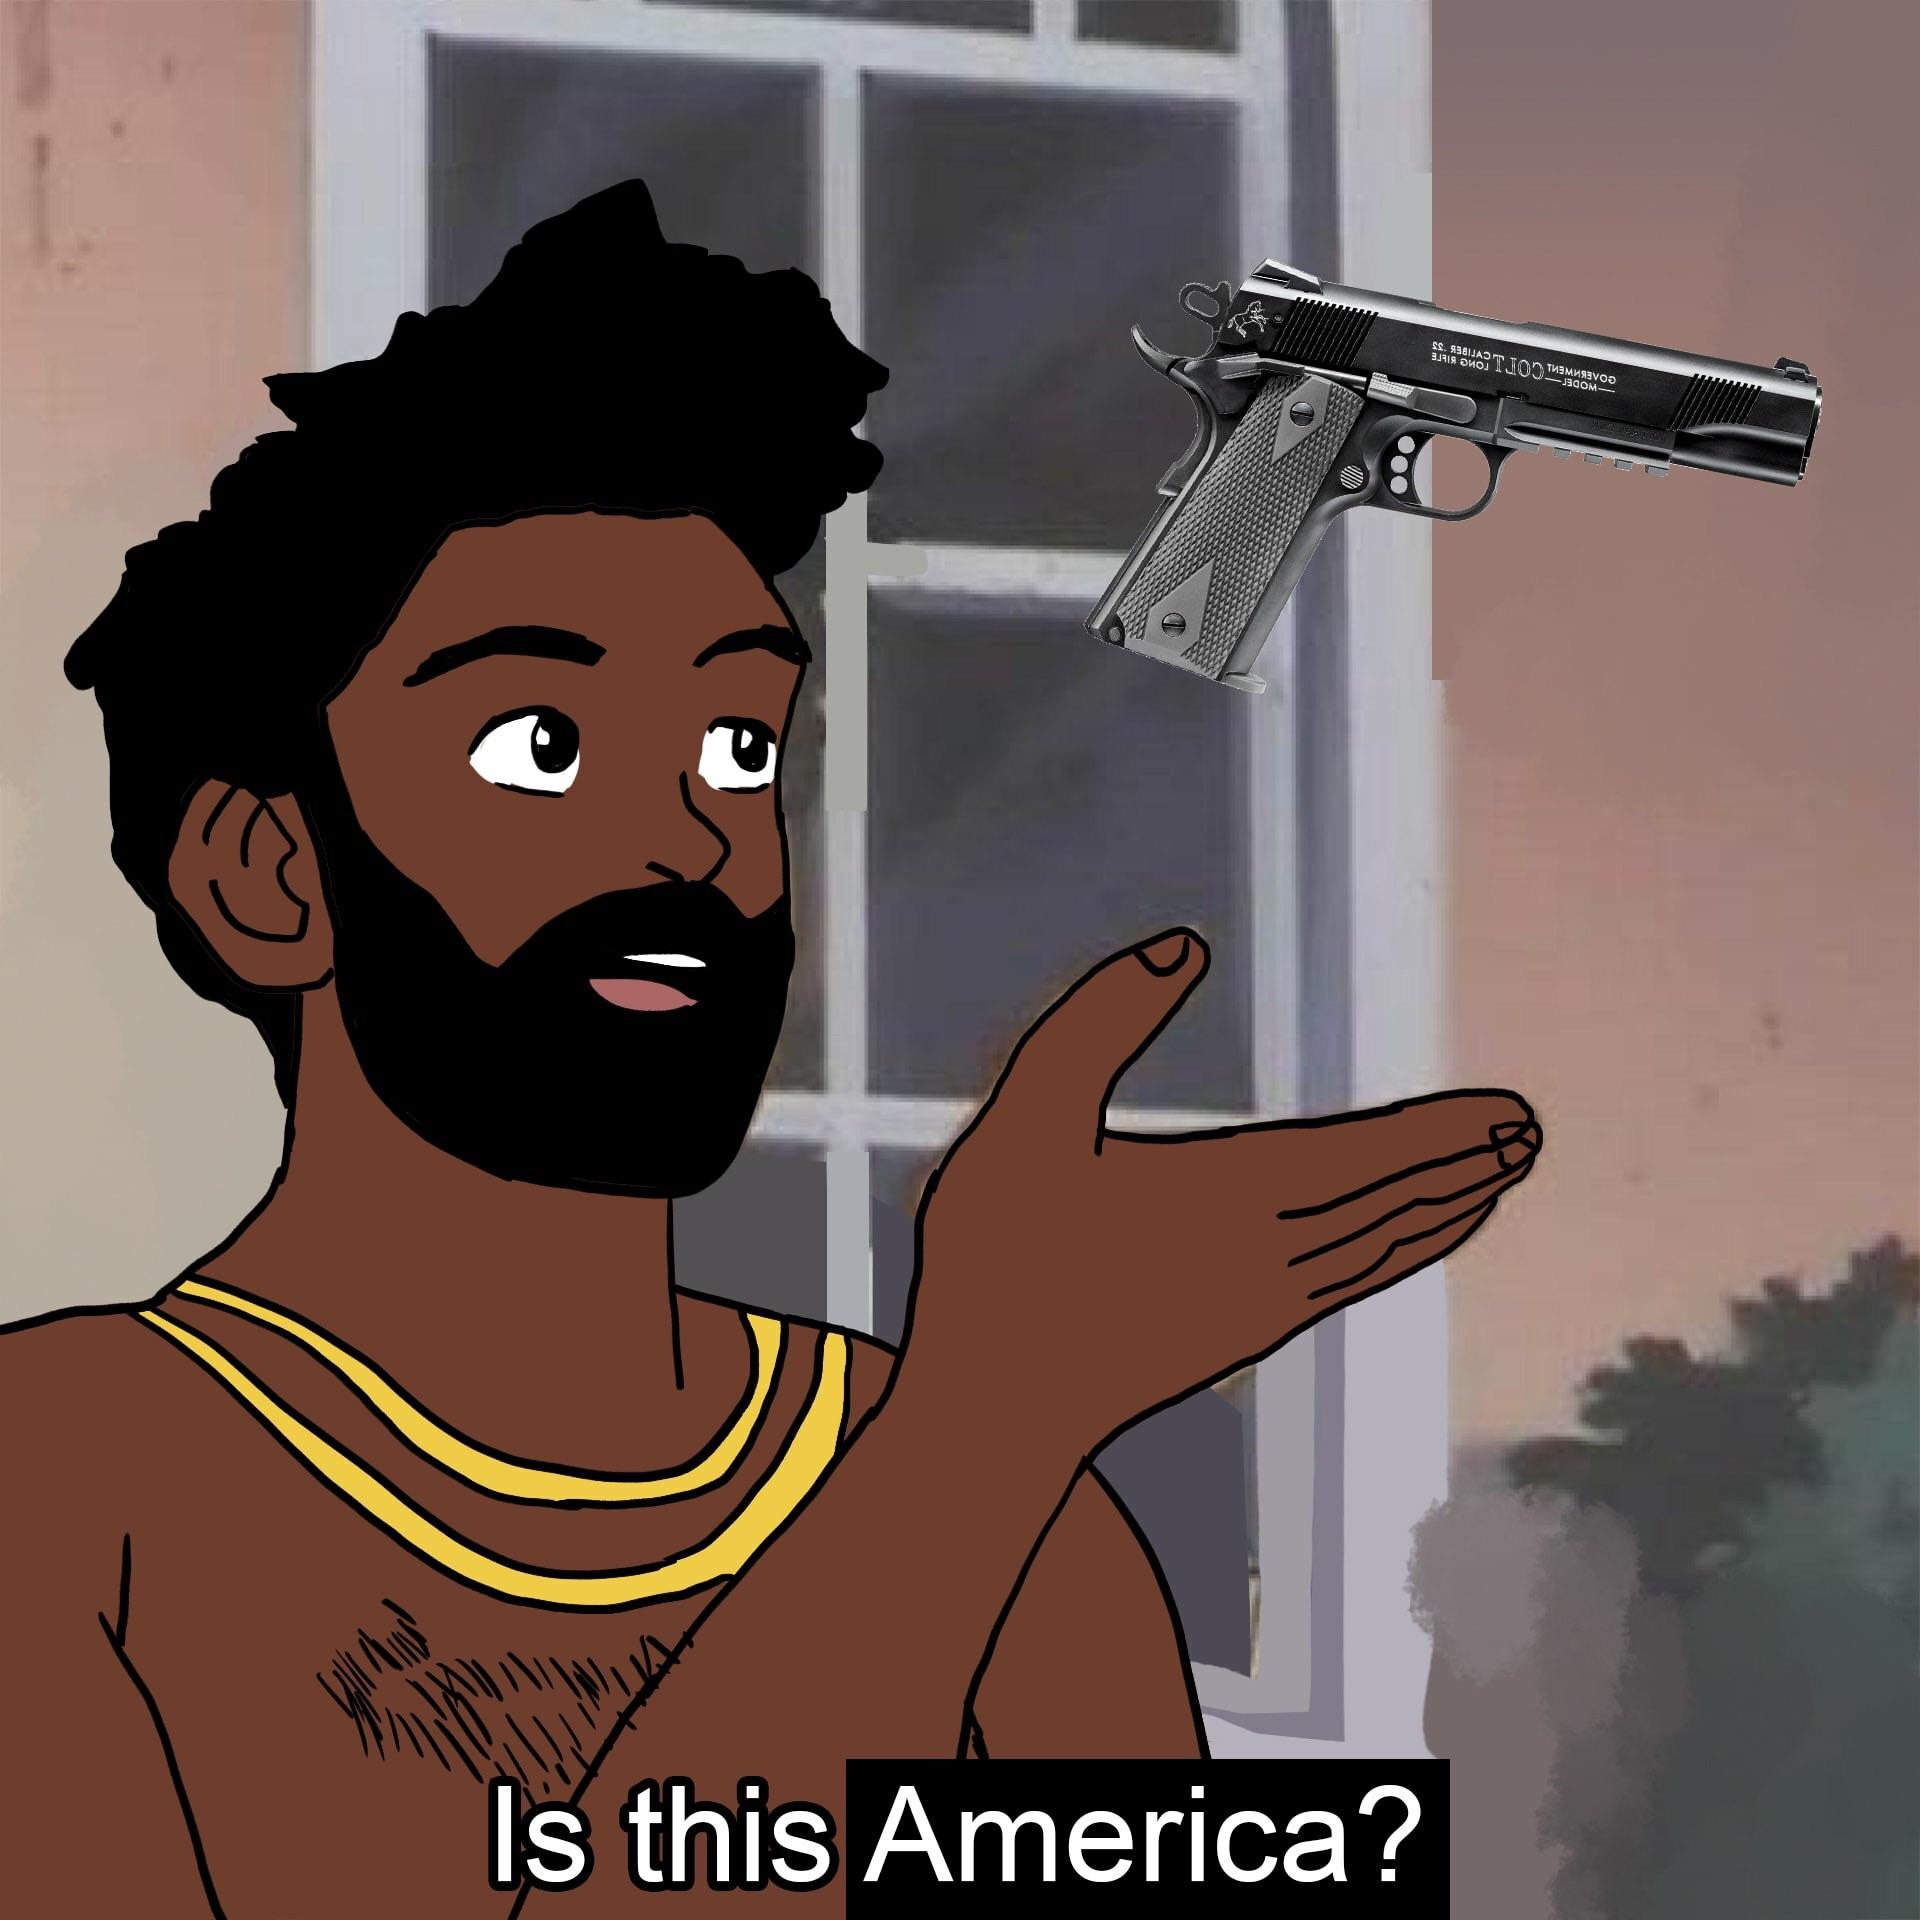 Is this America